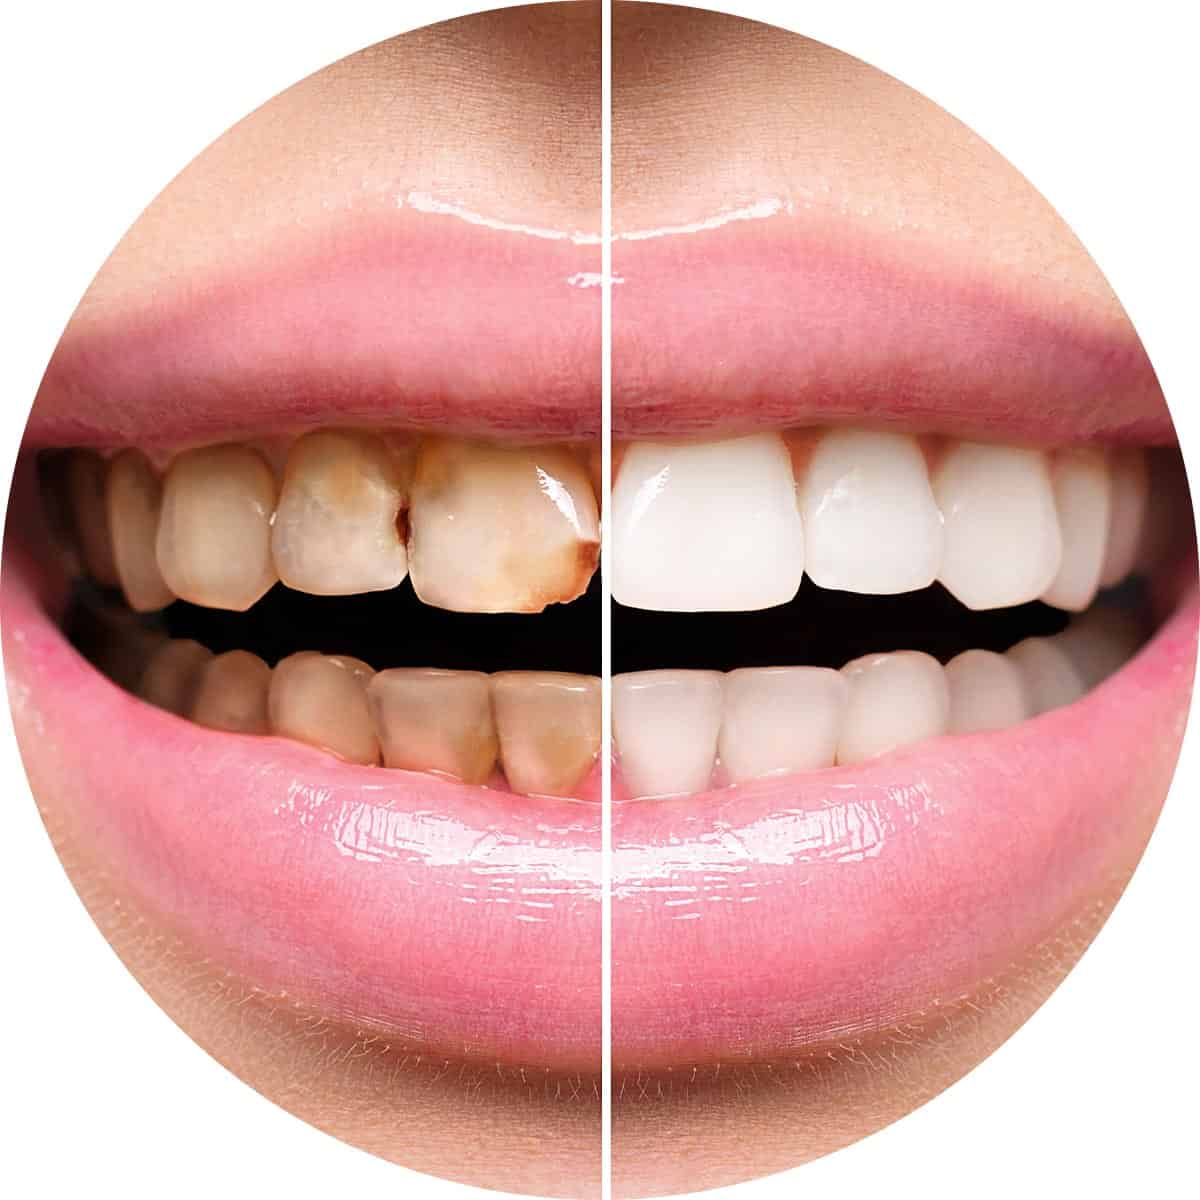 Before and after professional teeth whitening image